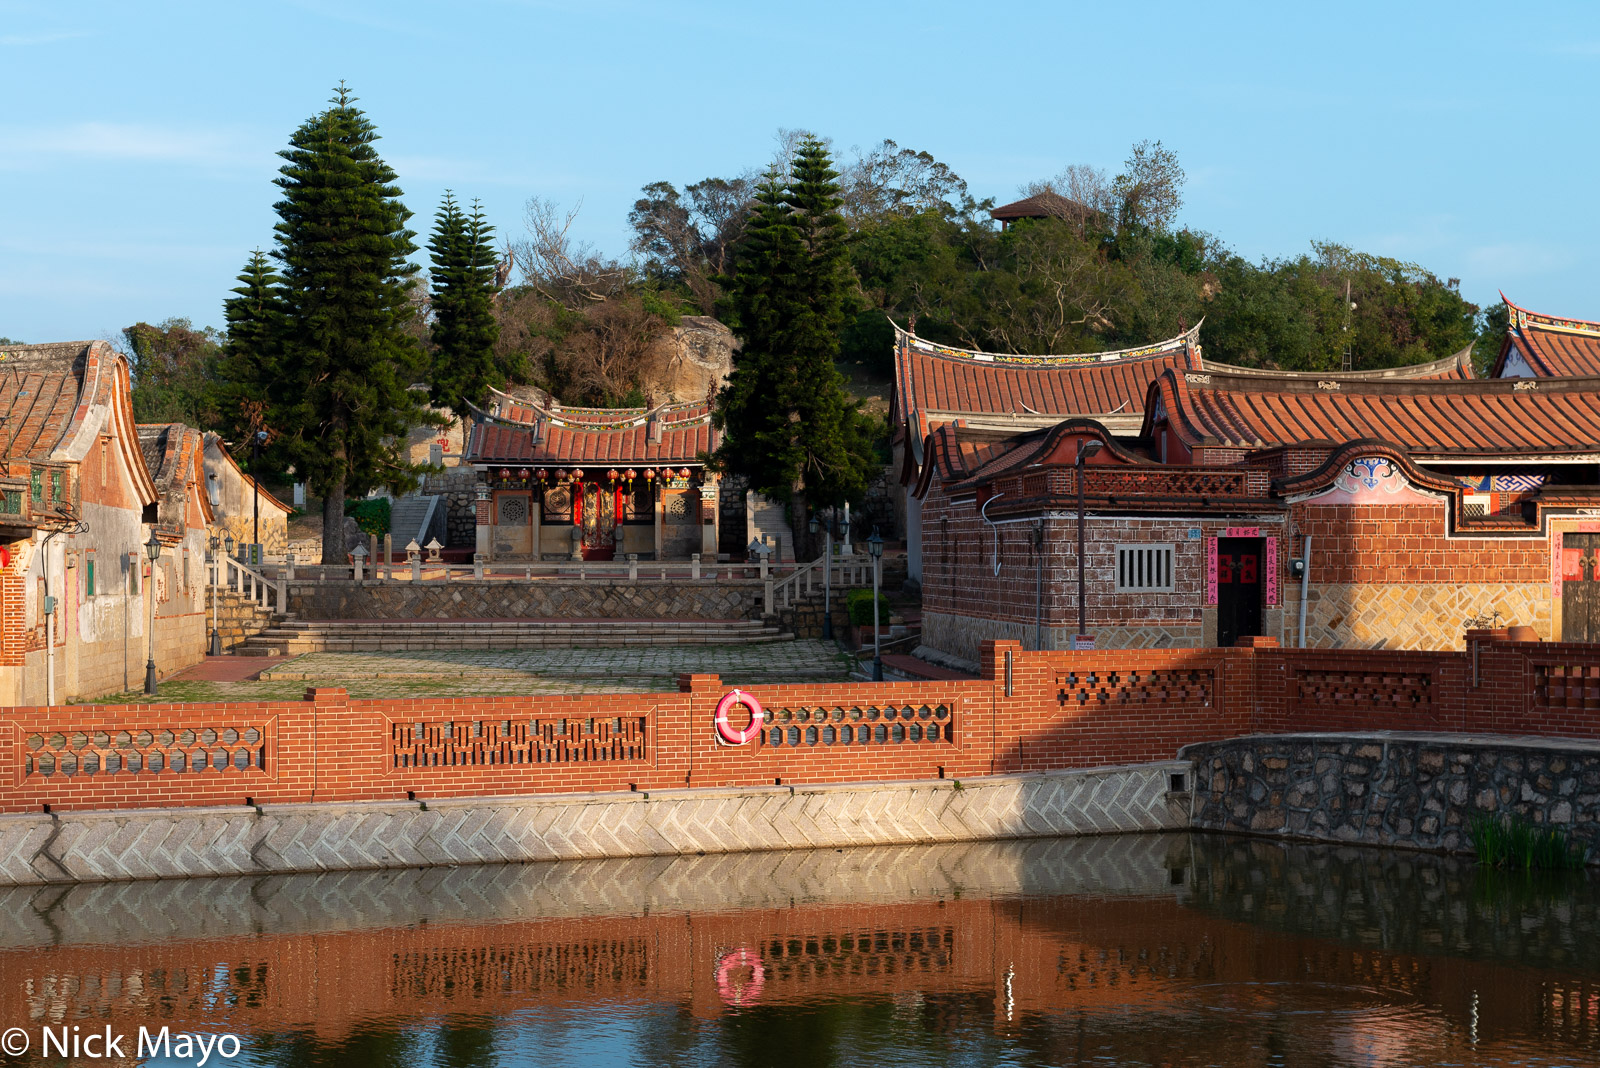 The temple and Minnan style village houses with their distinctive roofs at Zhushan on Kinmen.